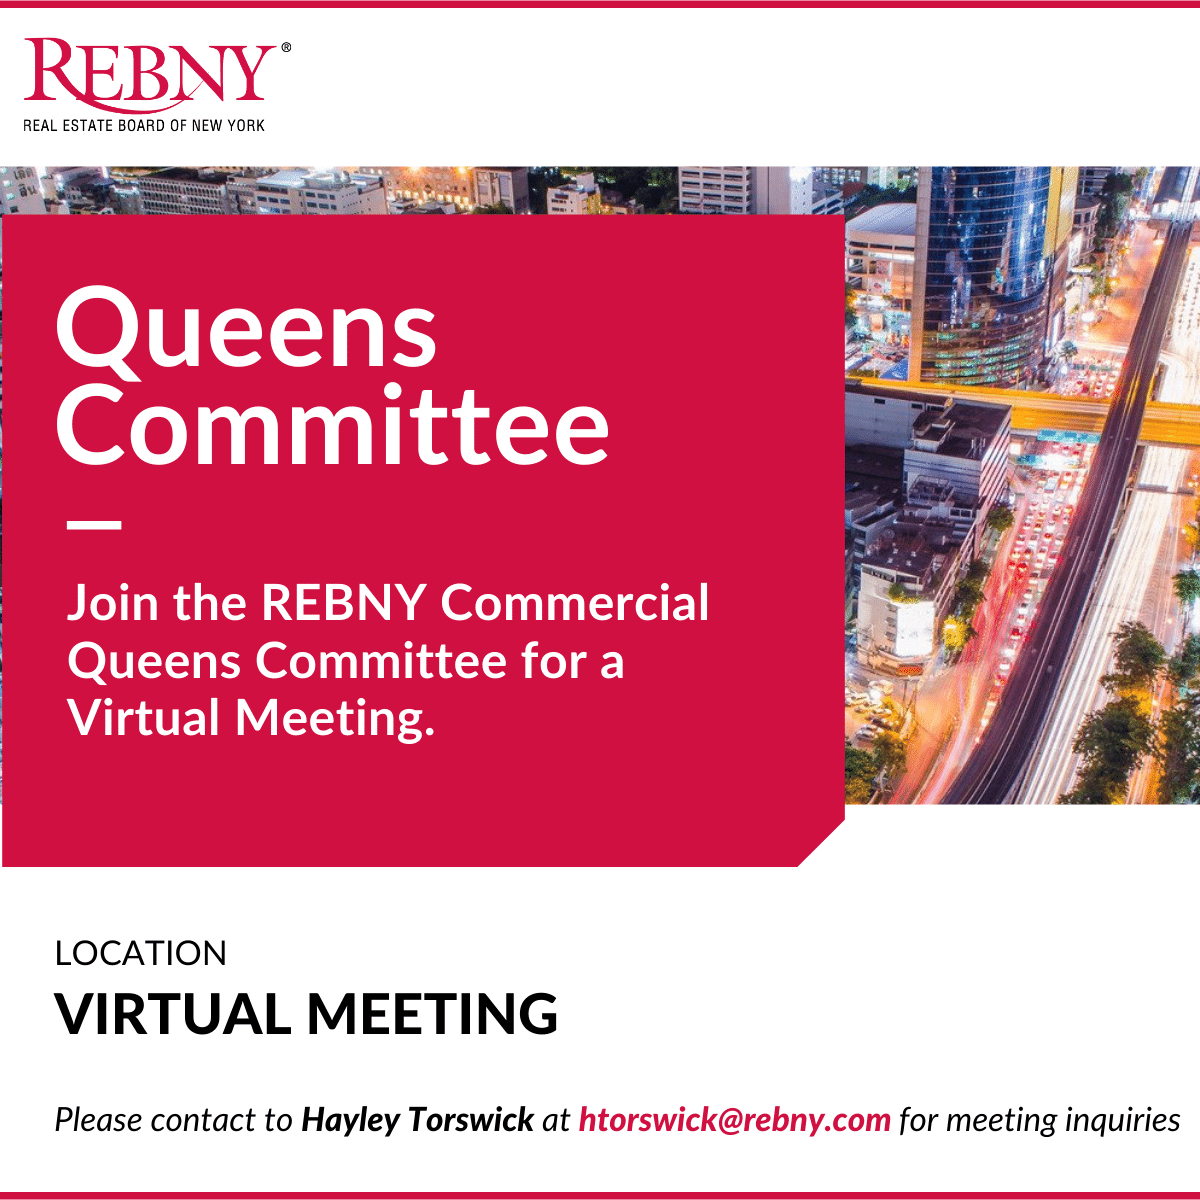 VIRTUAL: Commercial Brokerage Queens Committee Meeting